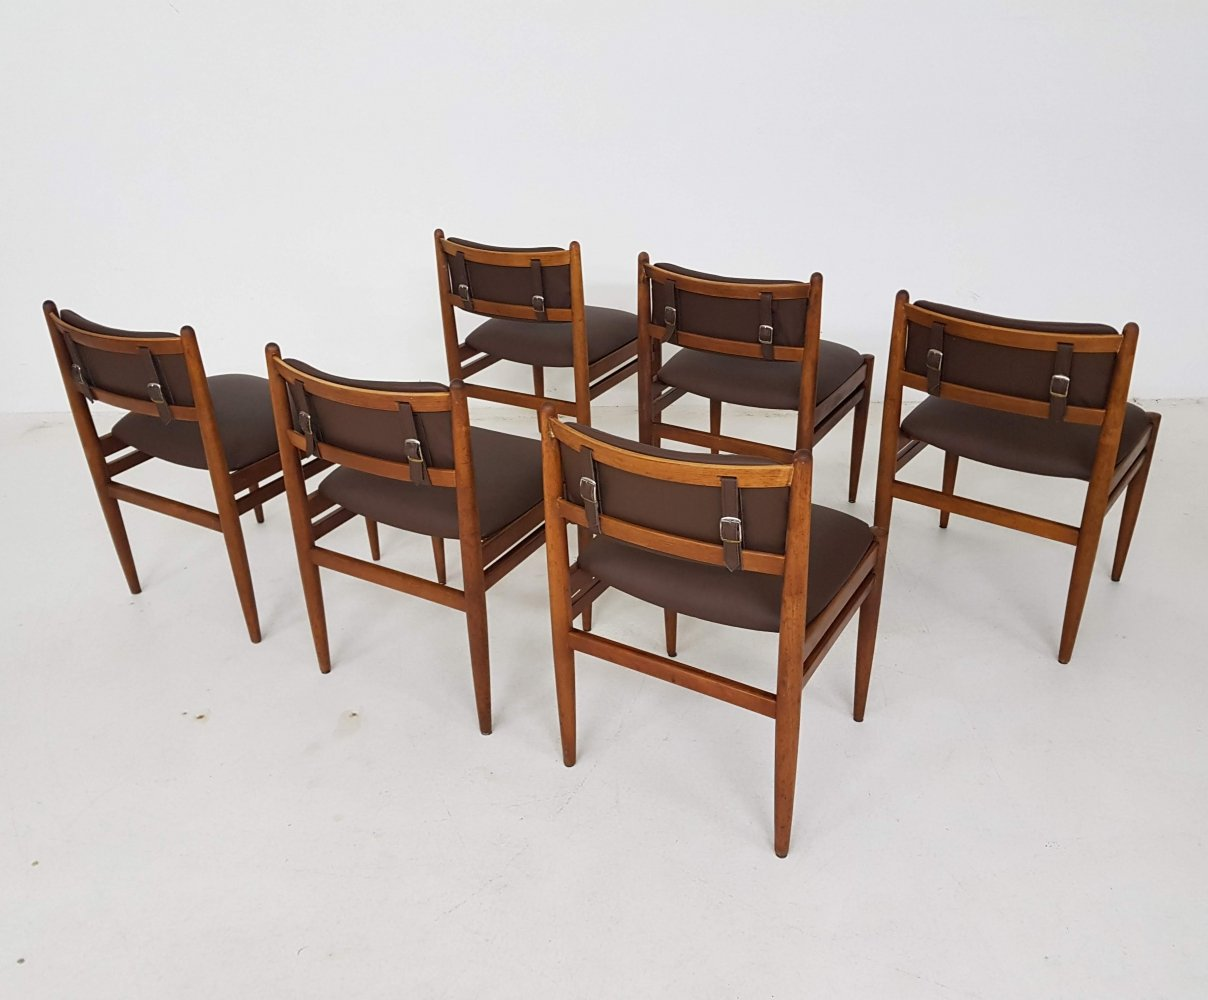 Set of 6 Vintage dining chairs with brown leather upholstery, 1960s